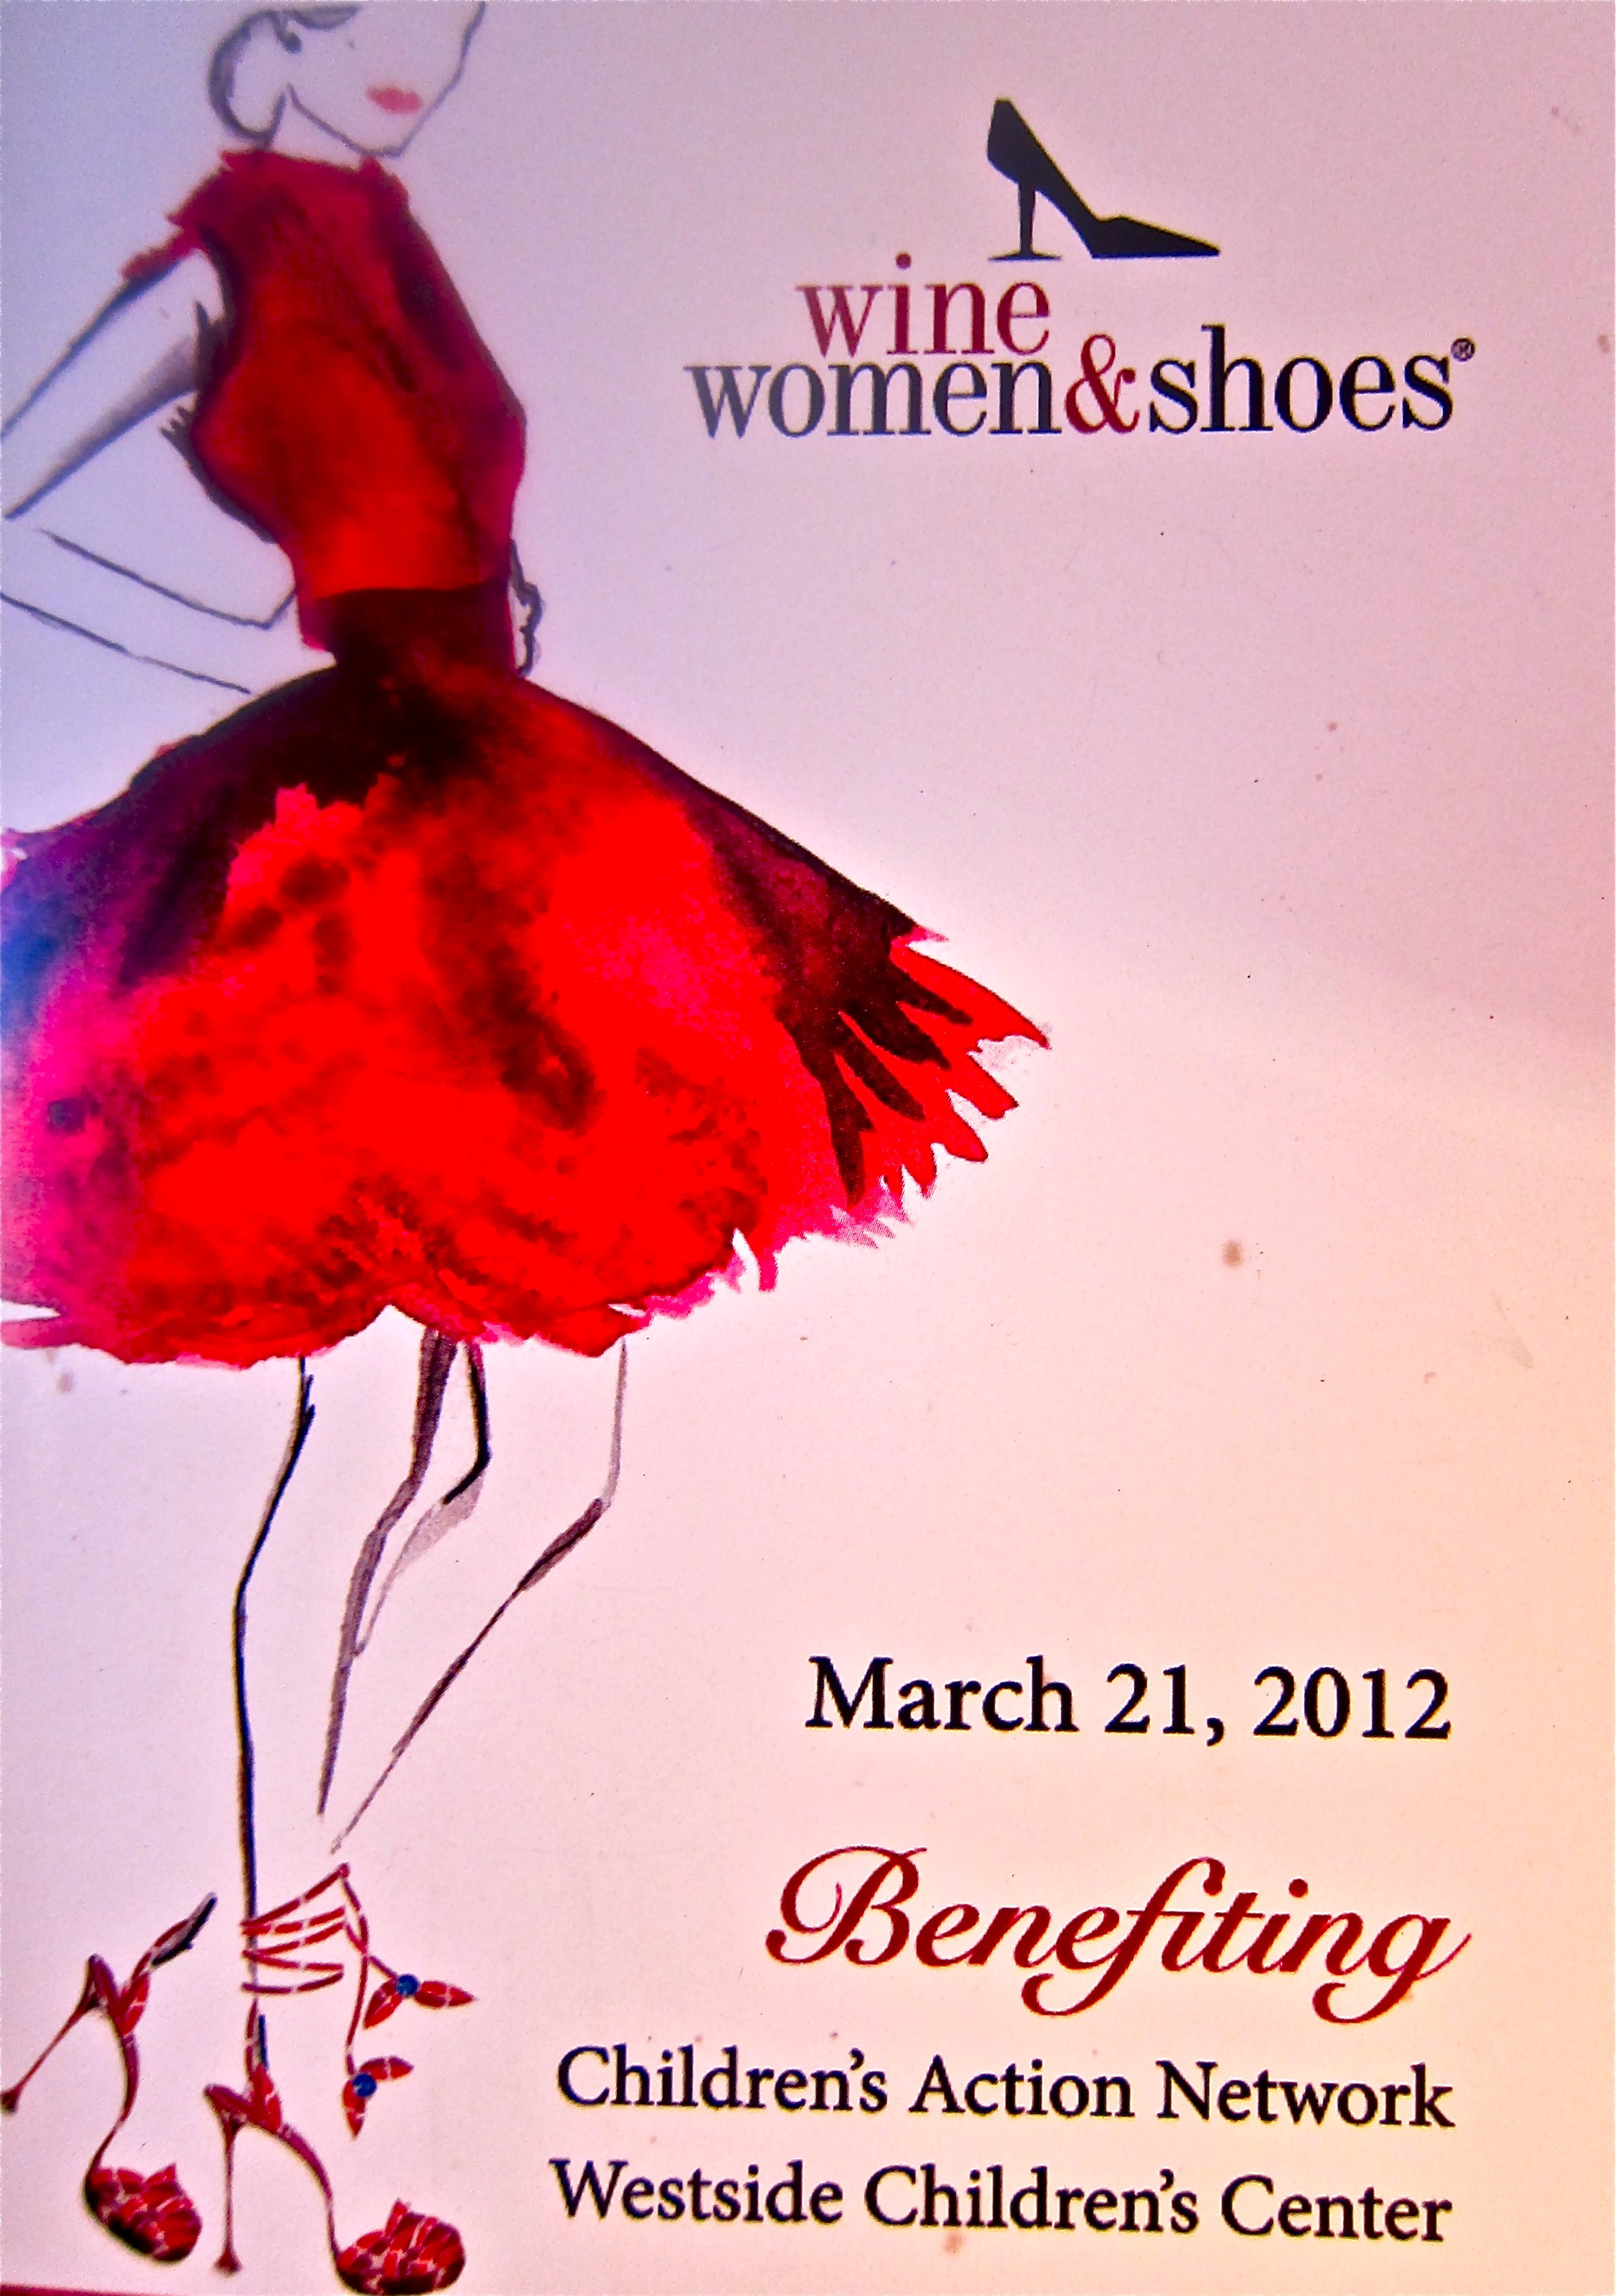 wine, women and shoes -event logo